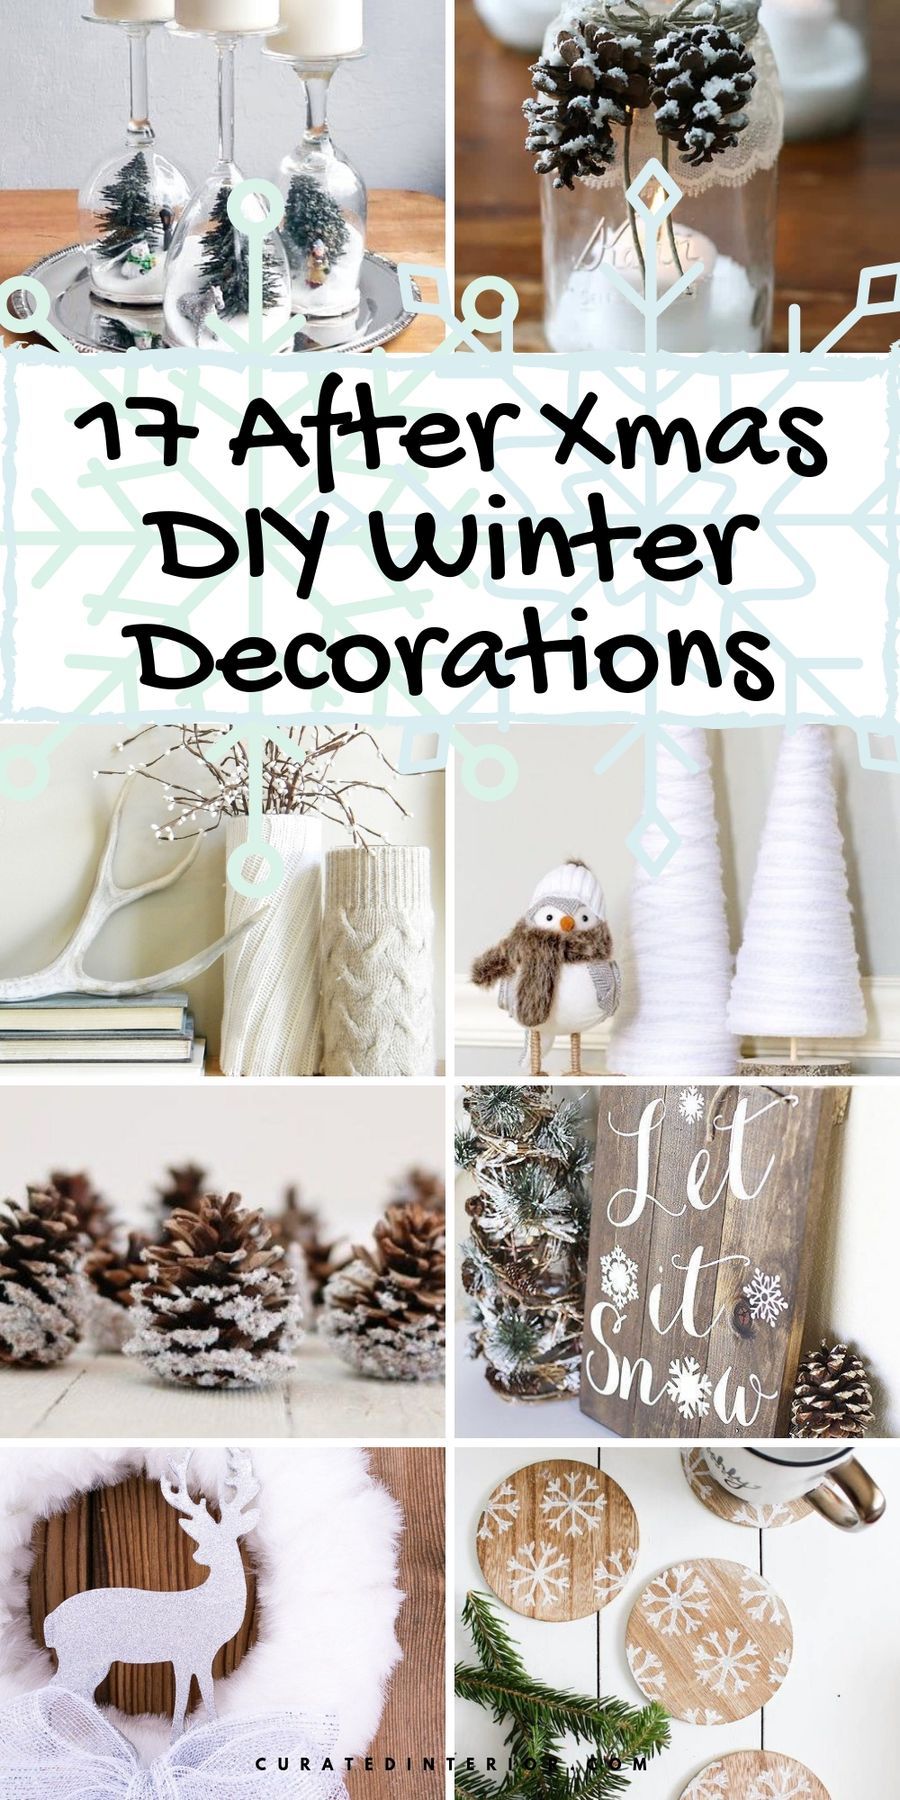 10 Cozy Decor Ideas For Your New Year S Eve Dining Room: 17 DIY Winter Decorations For After-Christmas Decorating